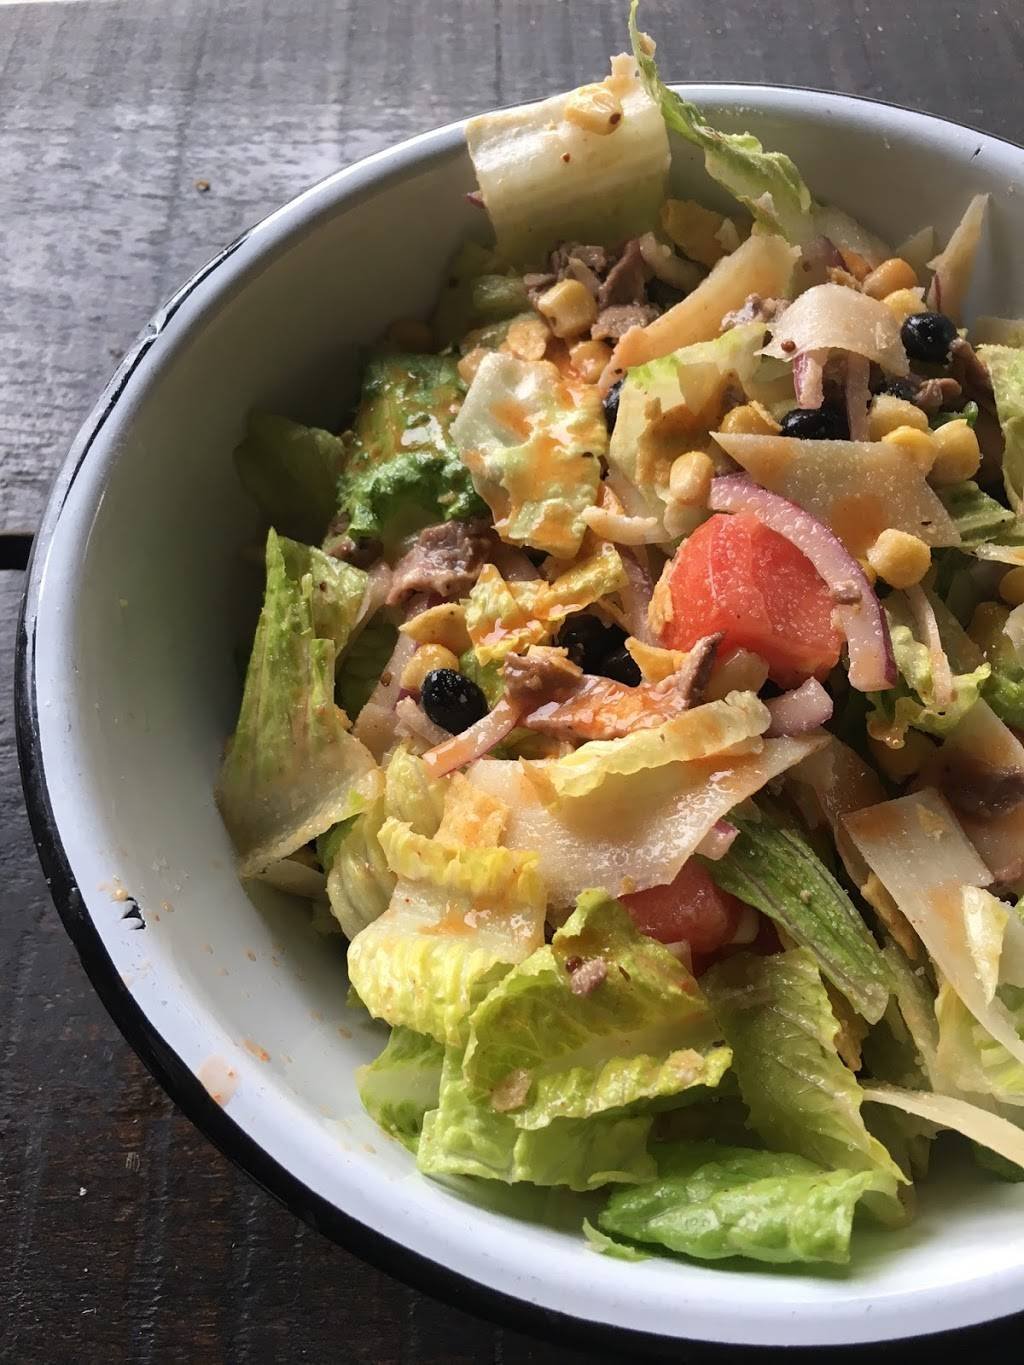 GreenStreets Salads   meal takeaway   67 Irving Ave, Brooklyn, NY 11237, USA   3474057956 OR +1 347-405-7956